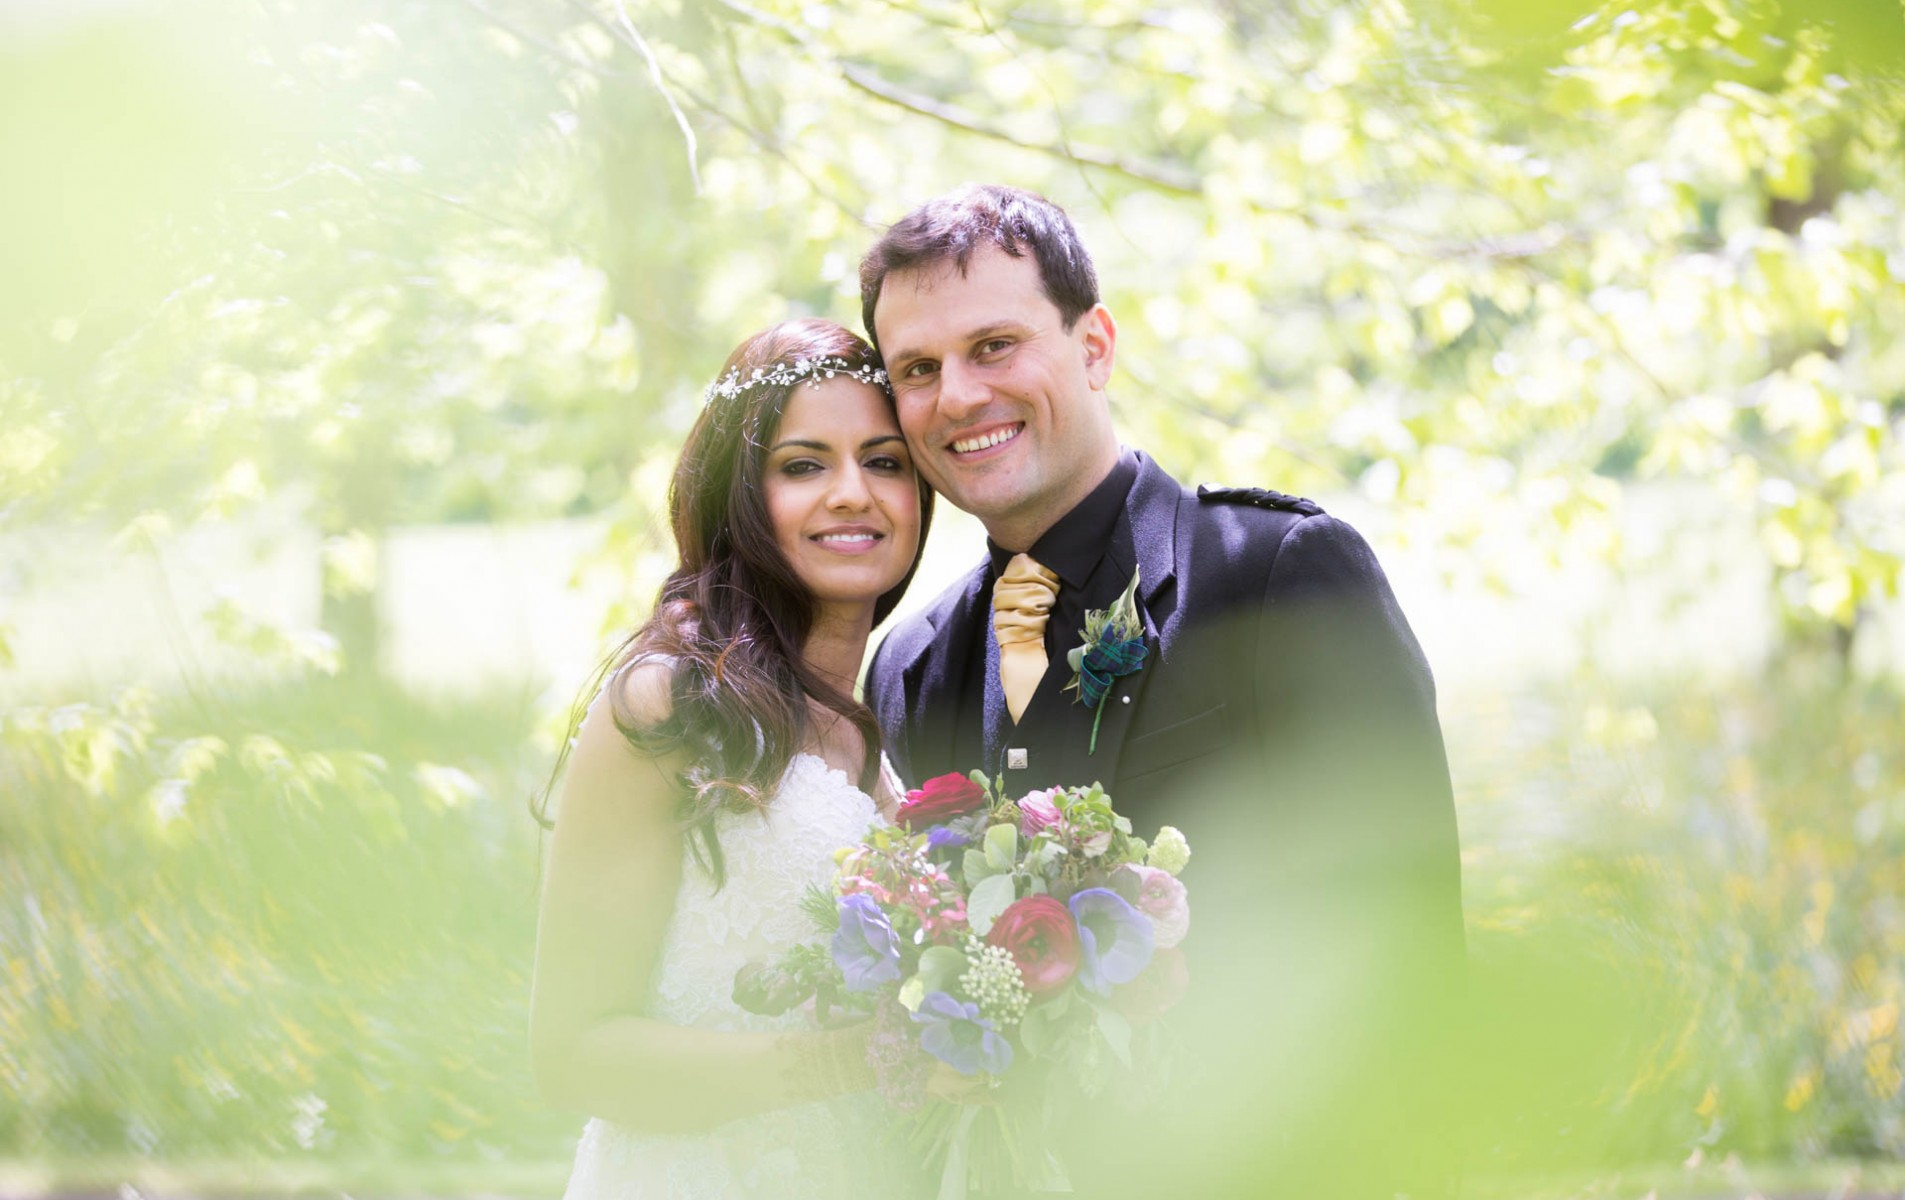 Scottish Hindu Fusion Wedding - Highlights Slideshow - Nimi and Vineet